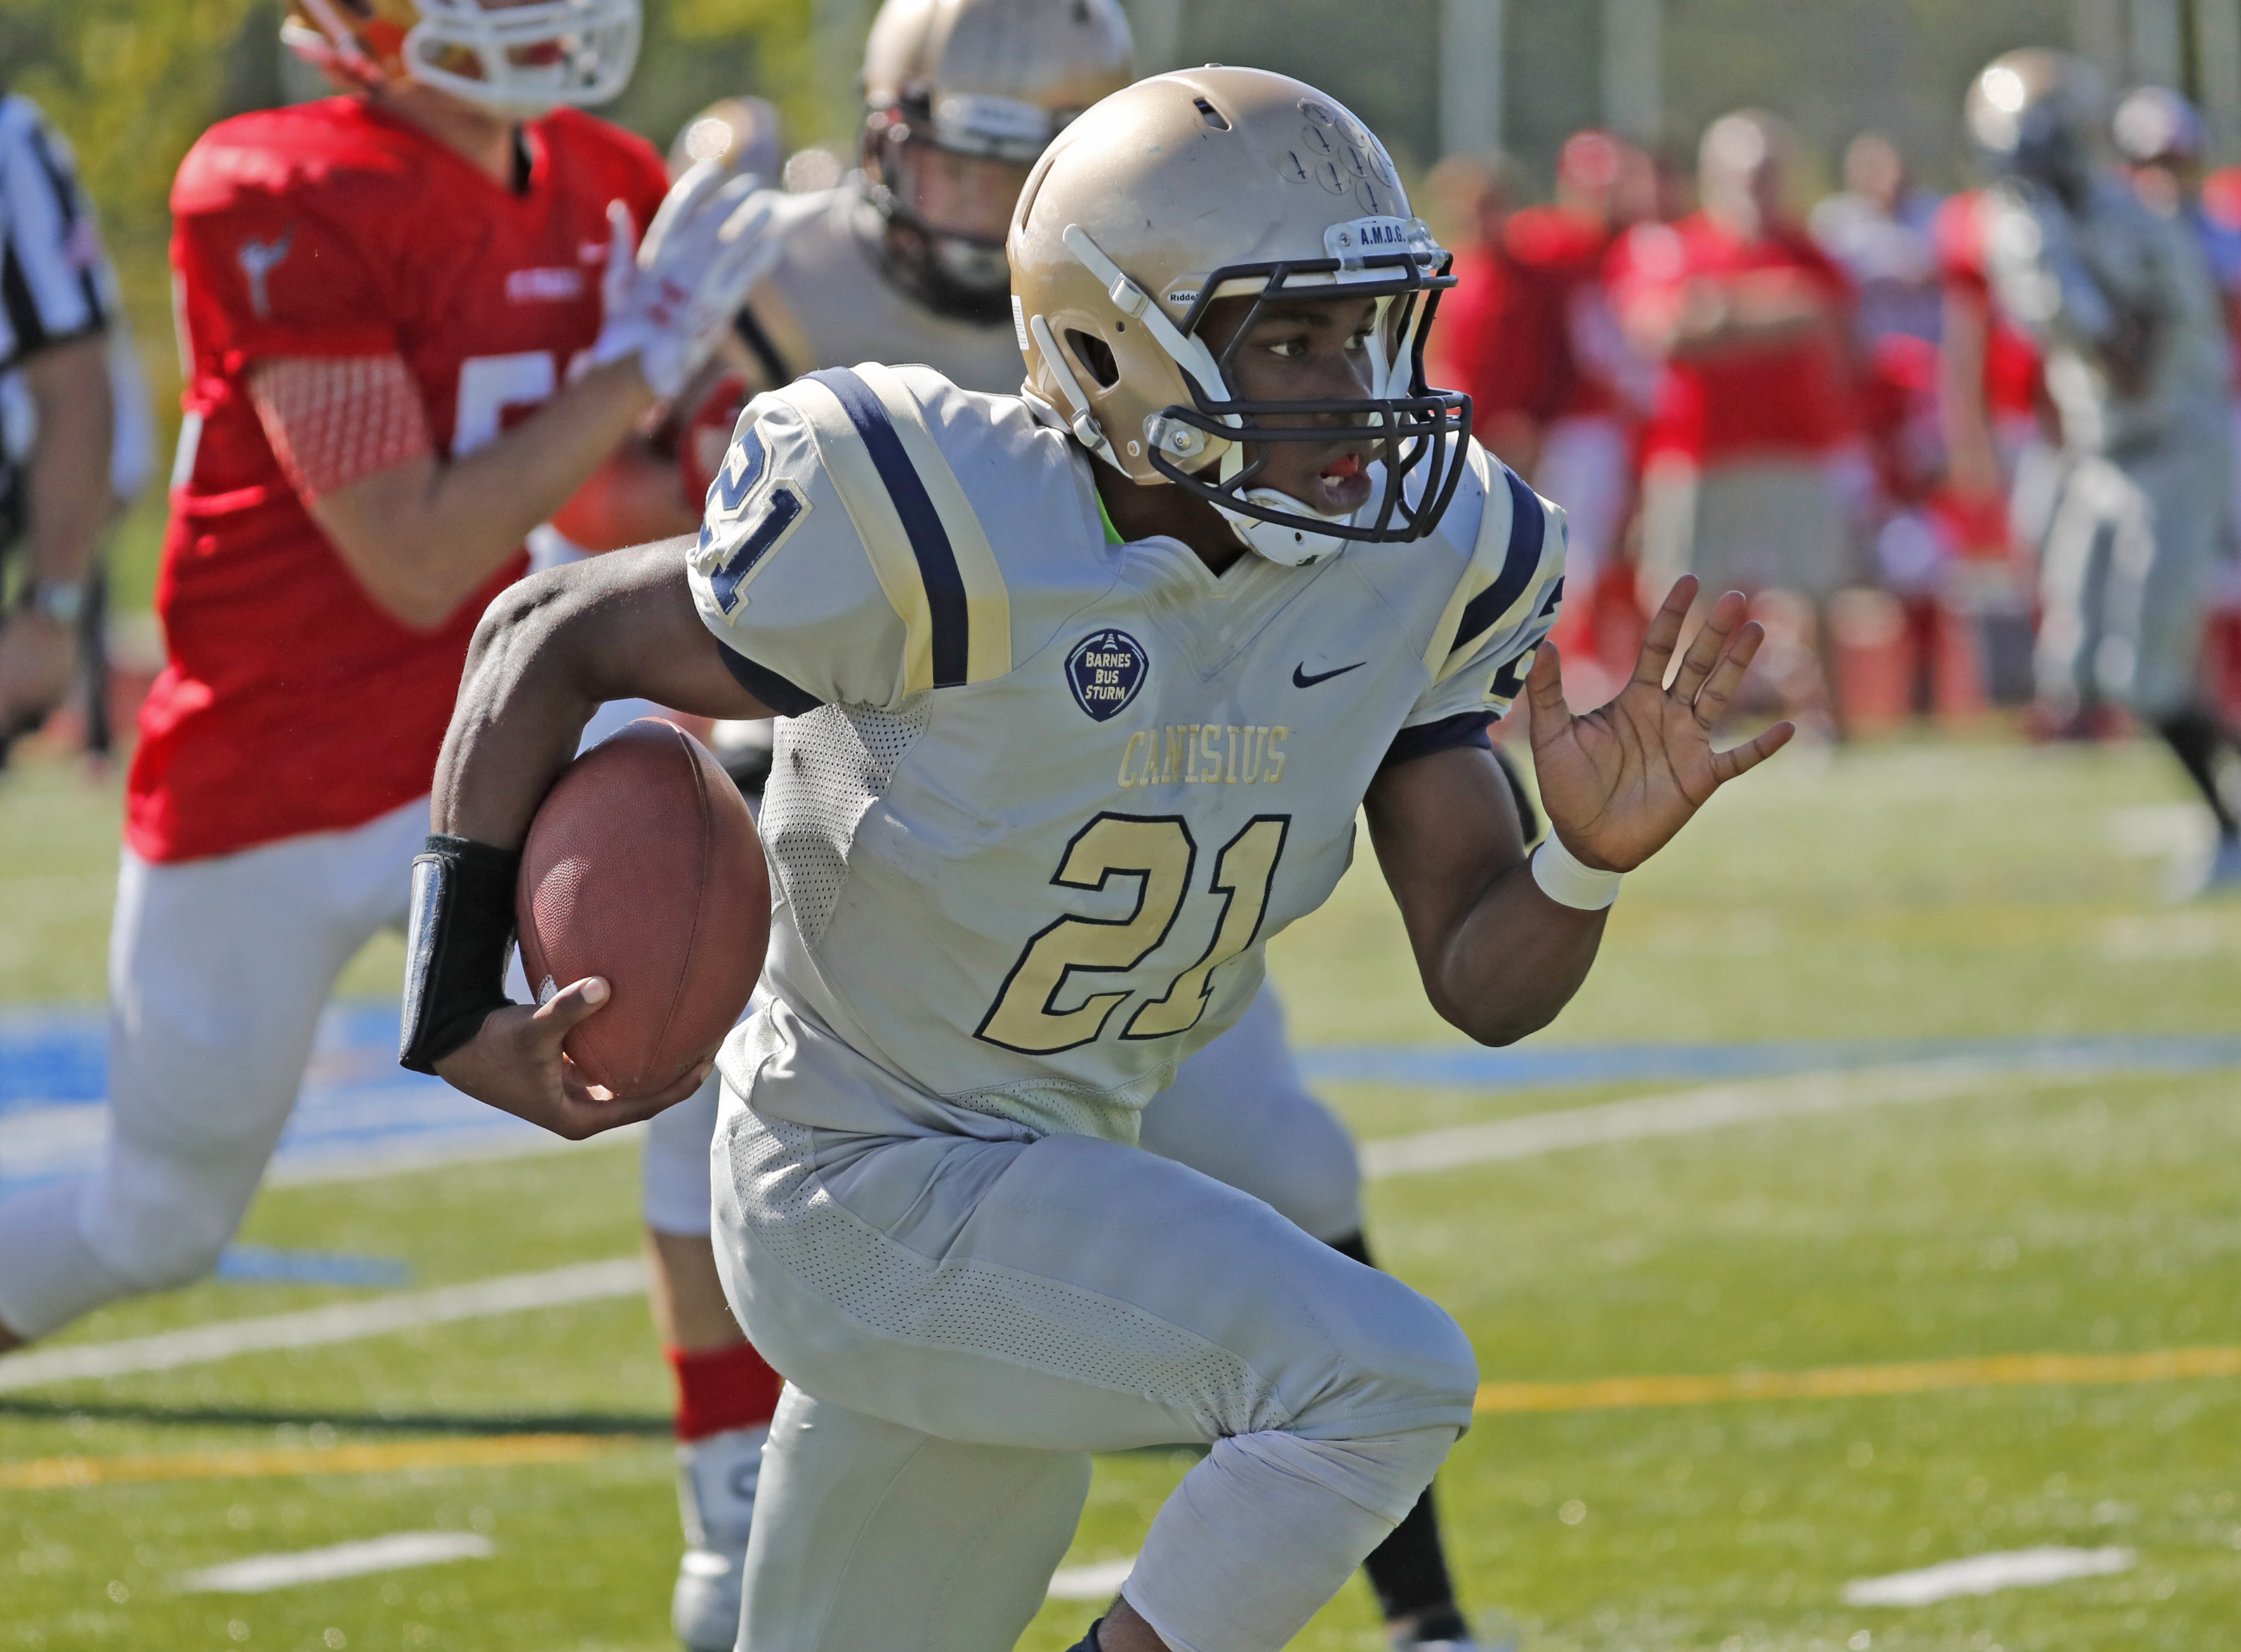 Kenyatta Huston and Canisius continued their run atop the large school football poll. The Crusaders are 4-0. (Harry Scull Jr./Buffalo News)